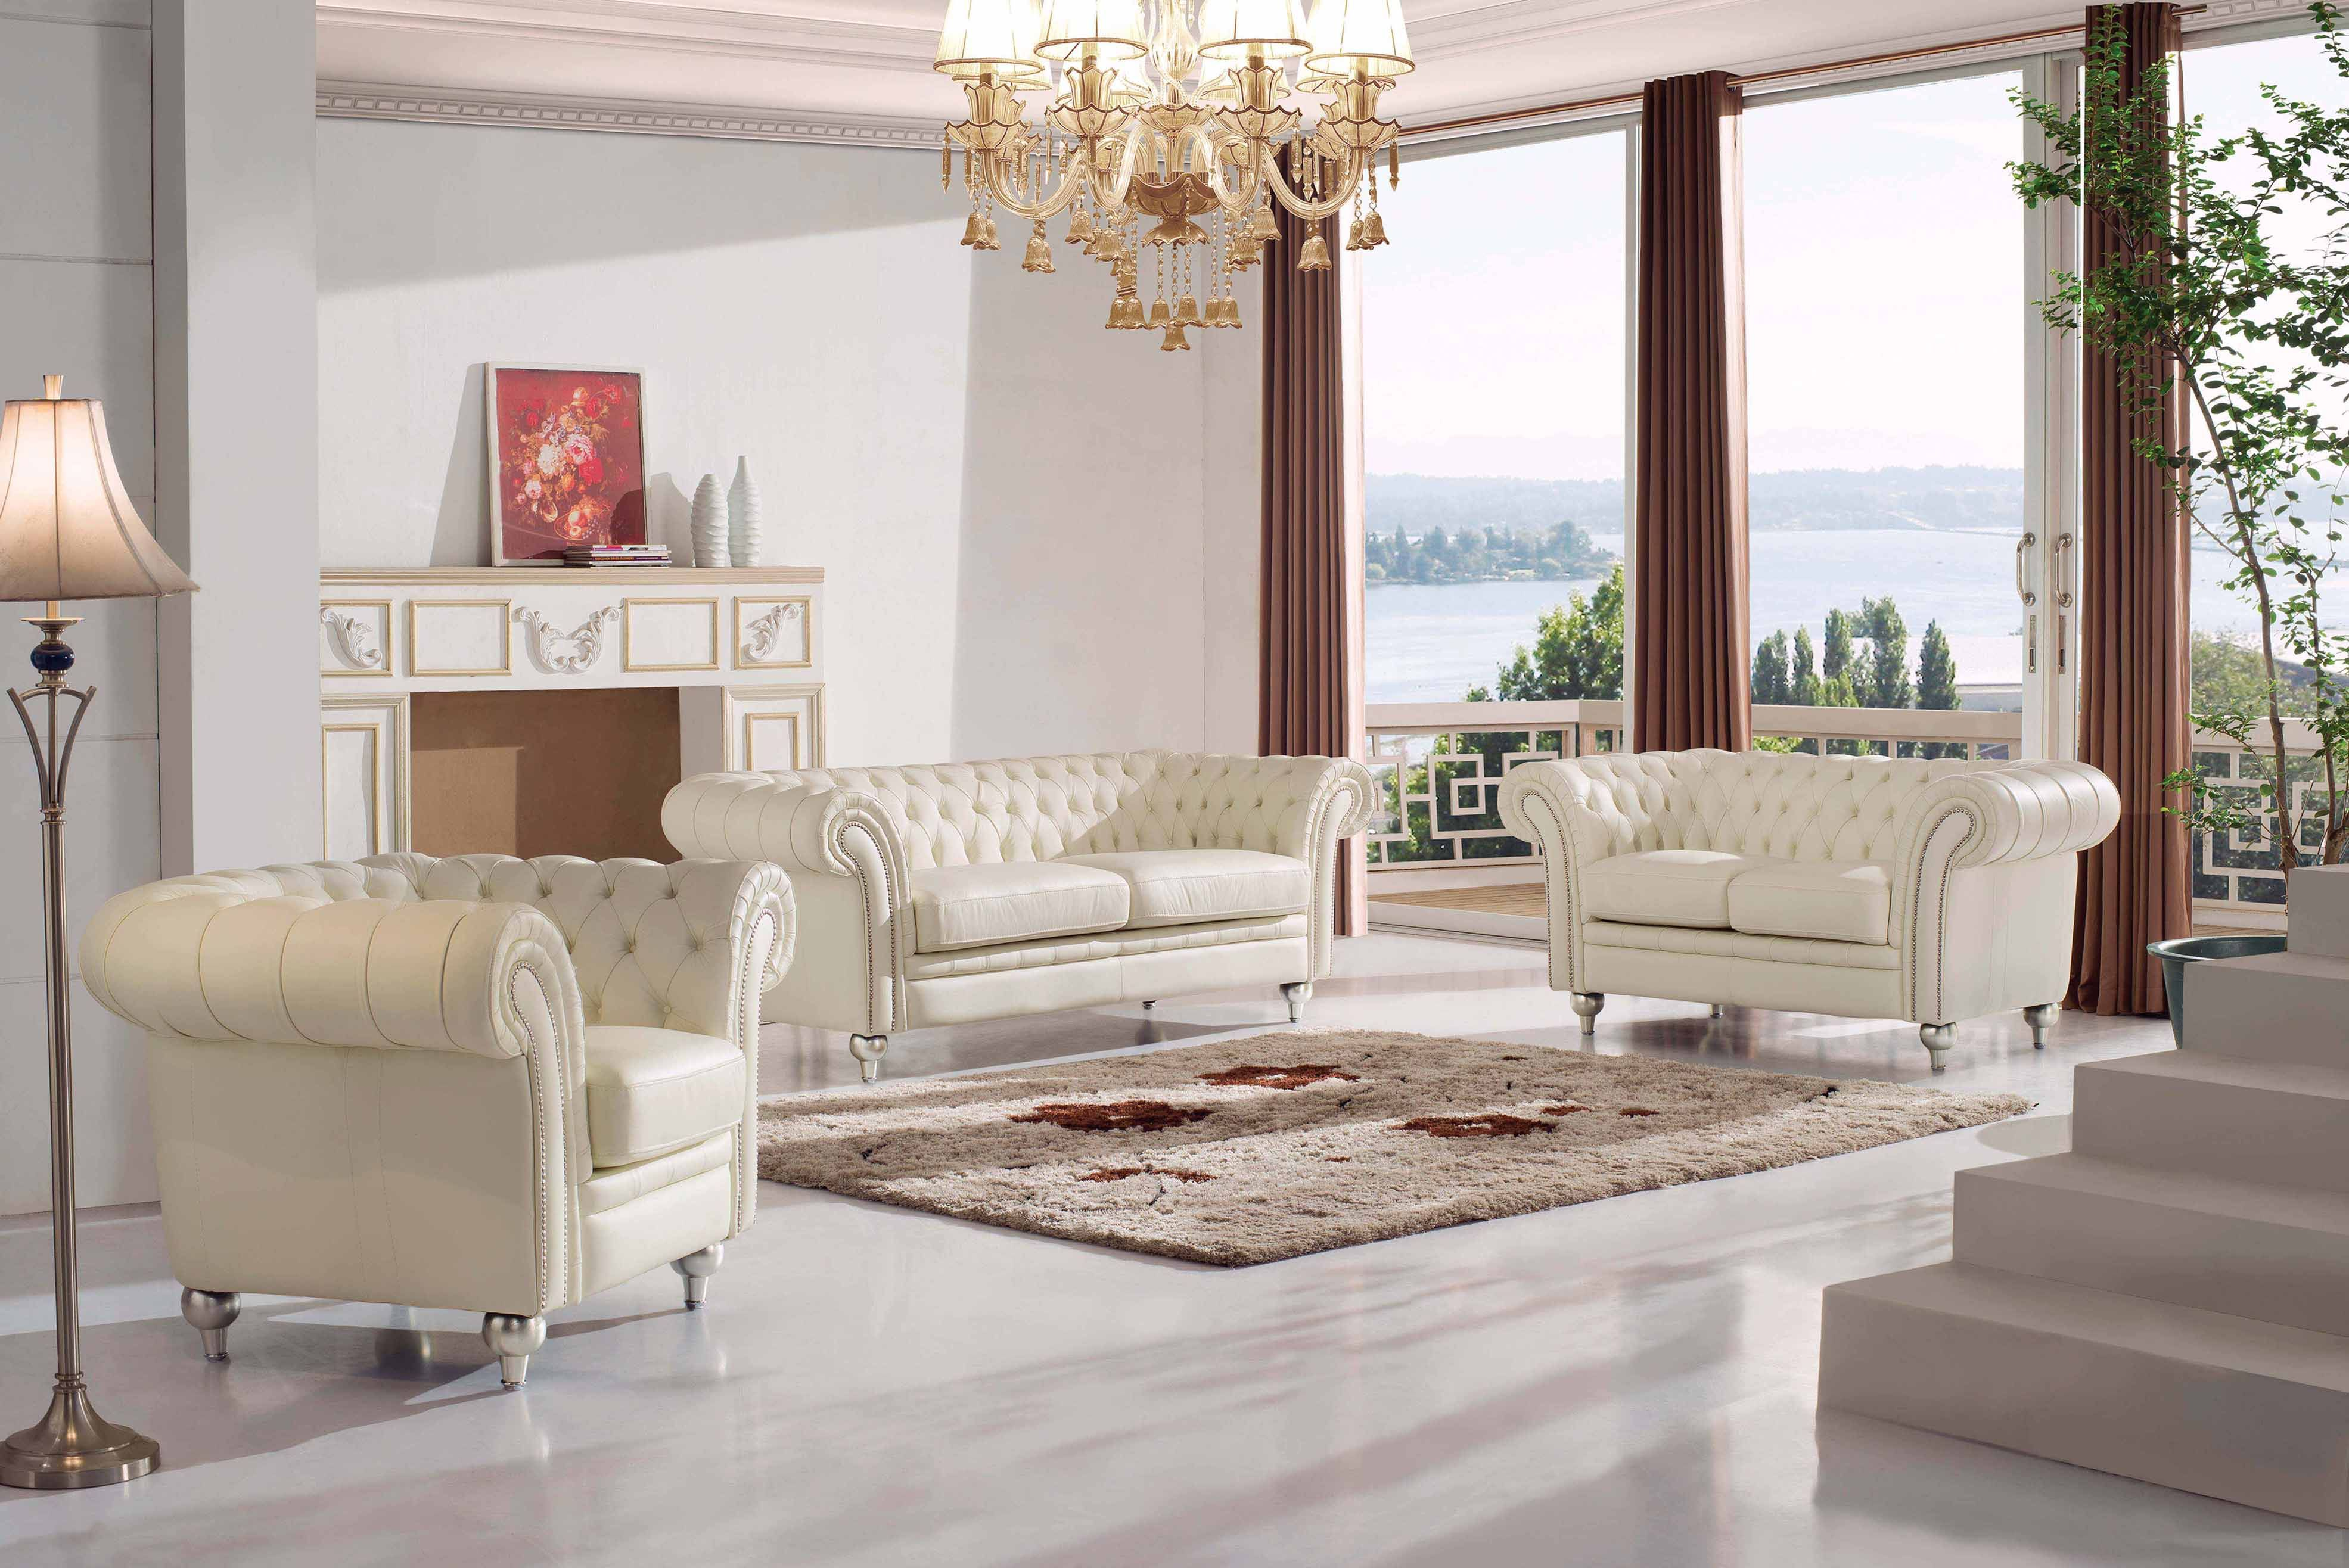 287 3 Seat Sofa Hl By Esf Living Room Leather Living Room Sets Leather Living Room Set #tufted #leather #living #room #set